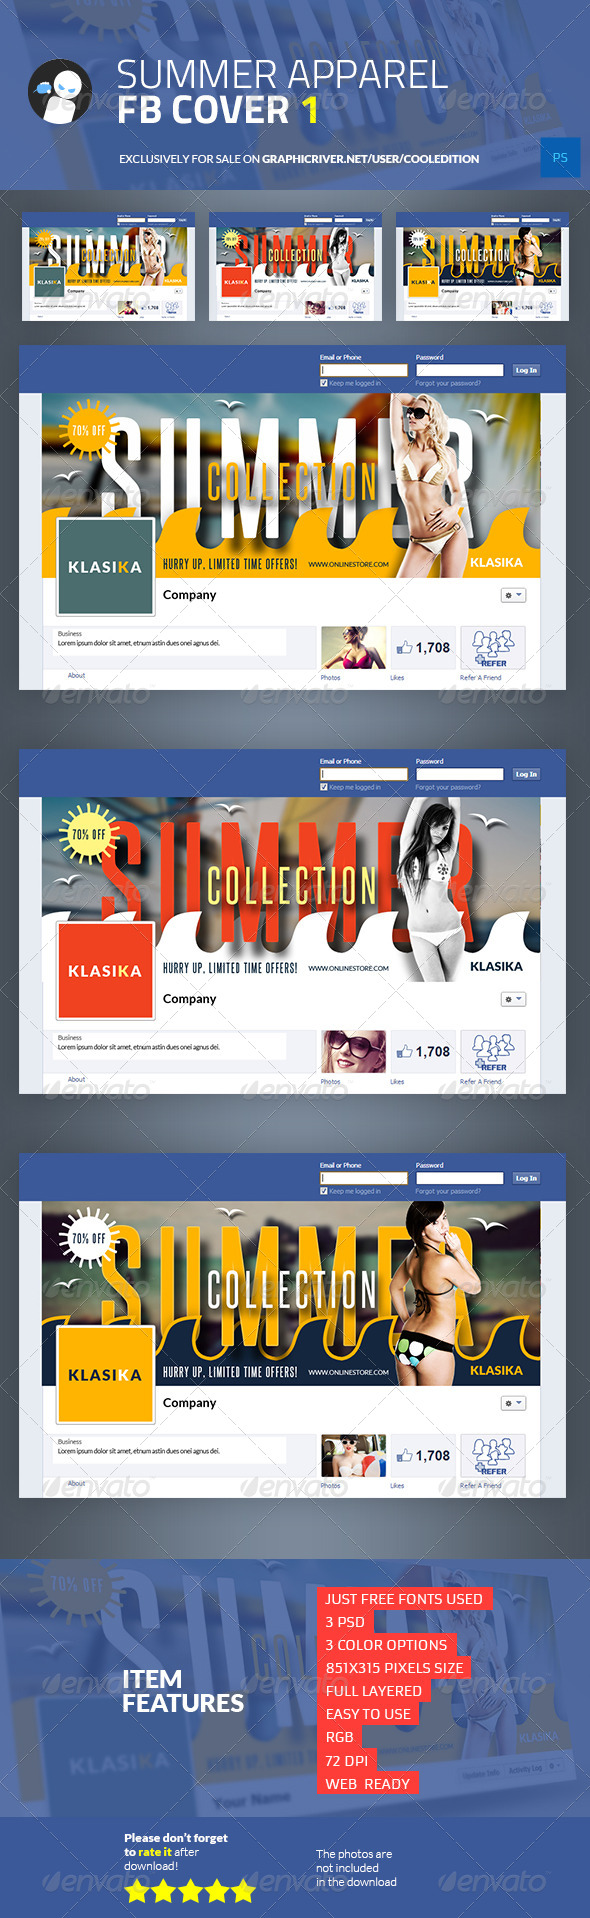 GraphicRiver Summer Apparel Facebook Cover 1 6814304